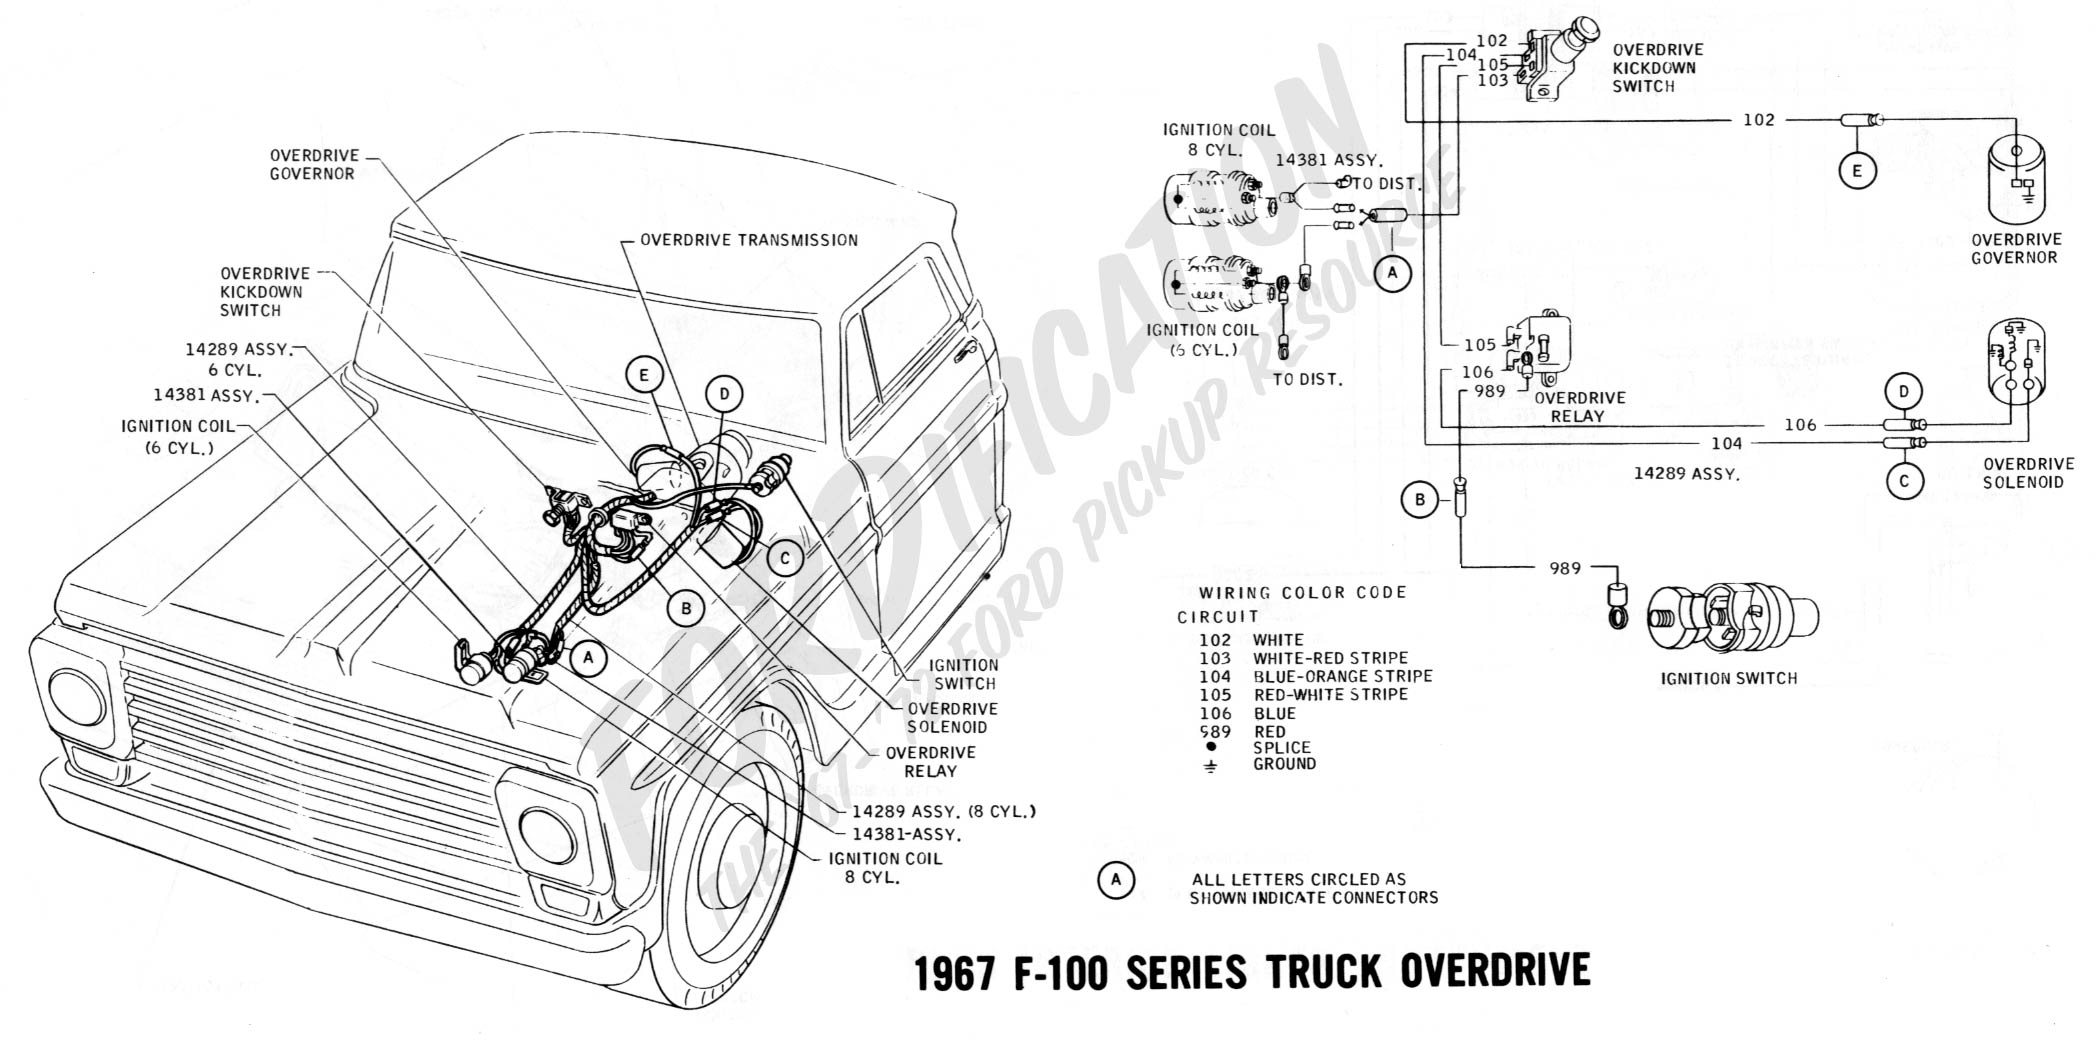 1978 Ford F 350 Wiring Diagram F250 Steering Column Opinions About Truck Technical Drawings And Schematics Section H Rh Fordification Com F150 Bronco